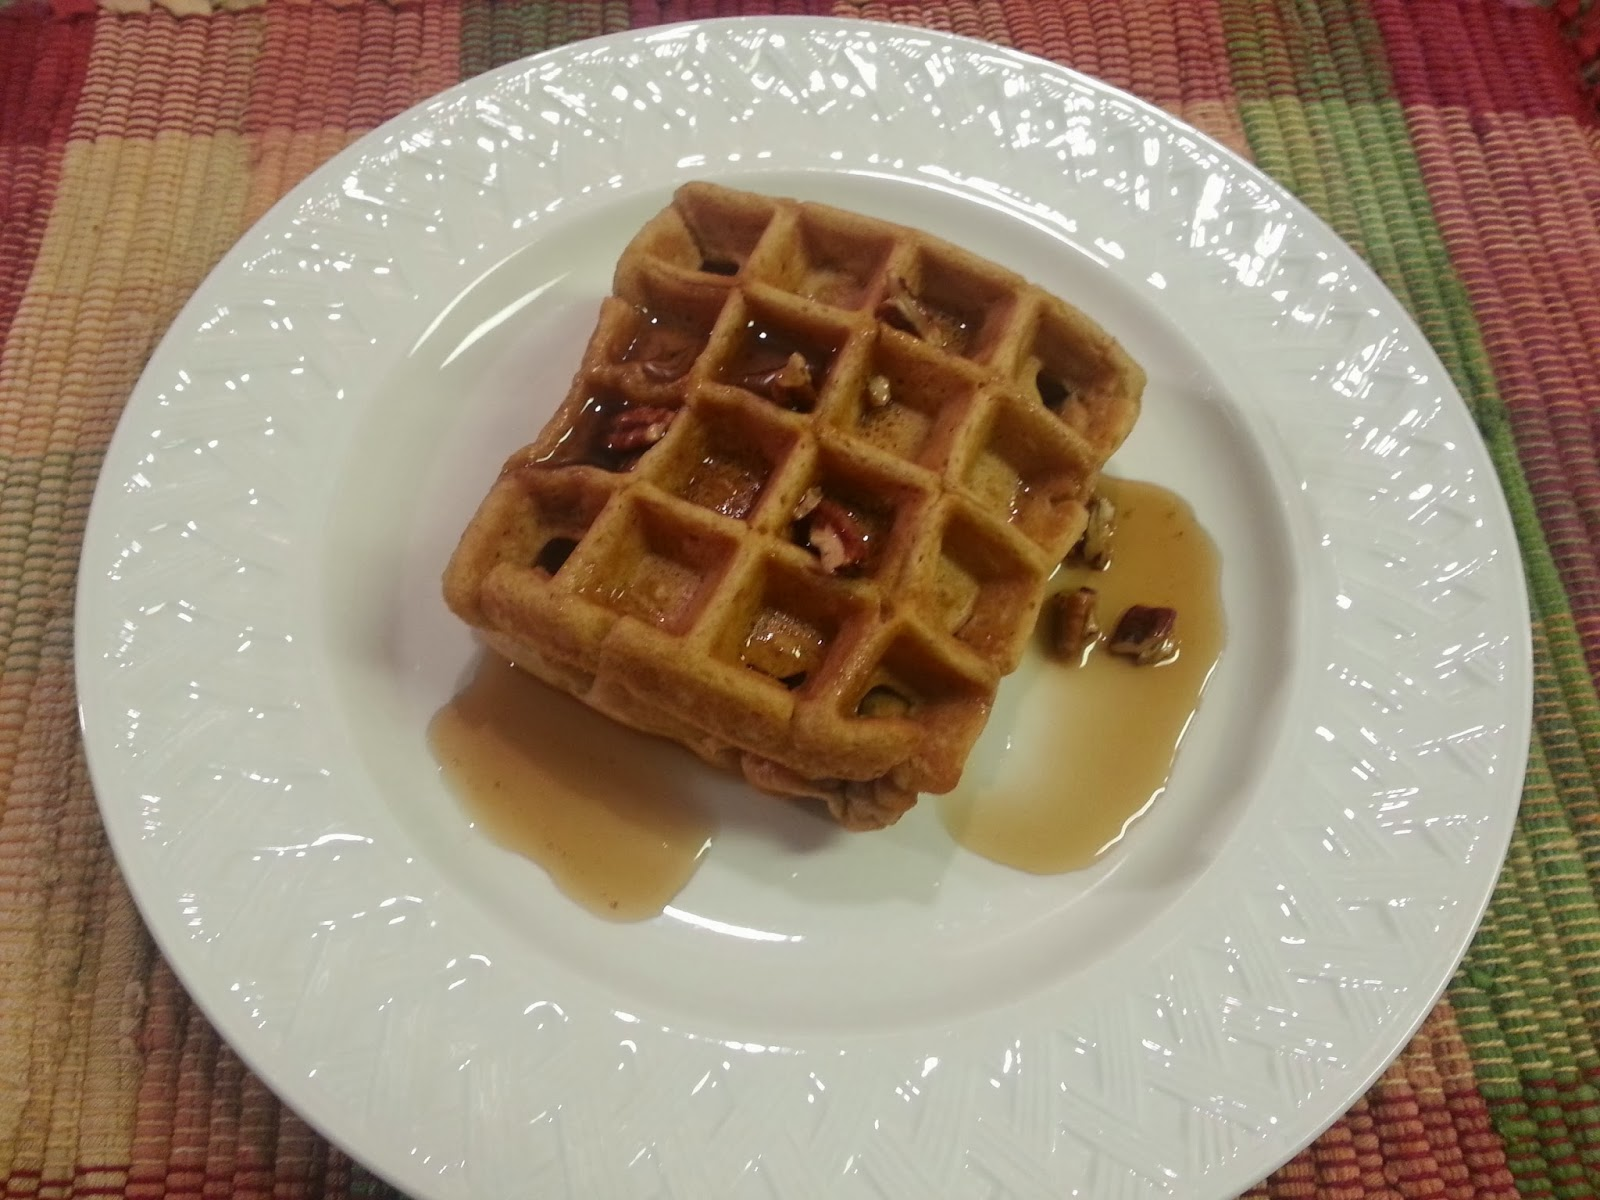 Project Soiree: Tasty Tuesday: Apple Cider Waffles